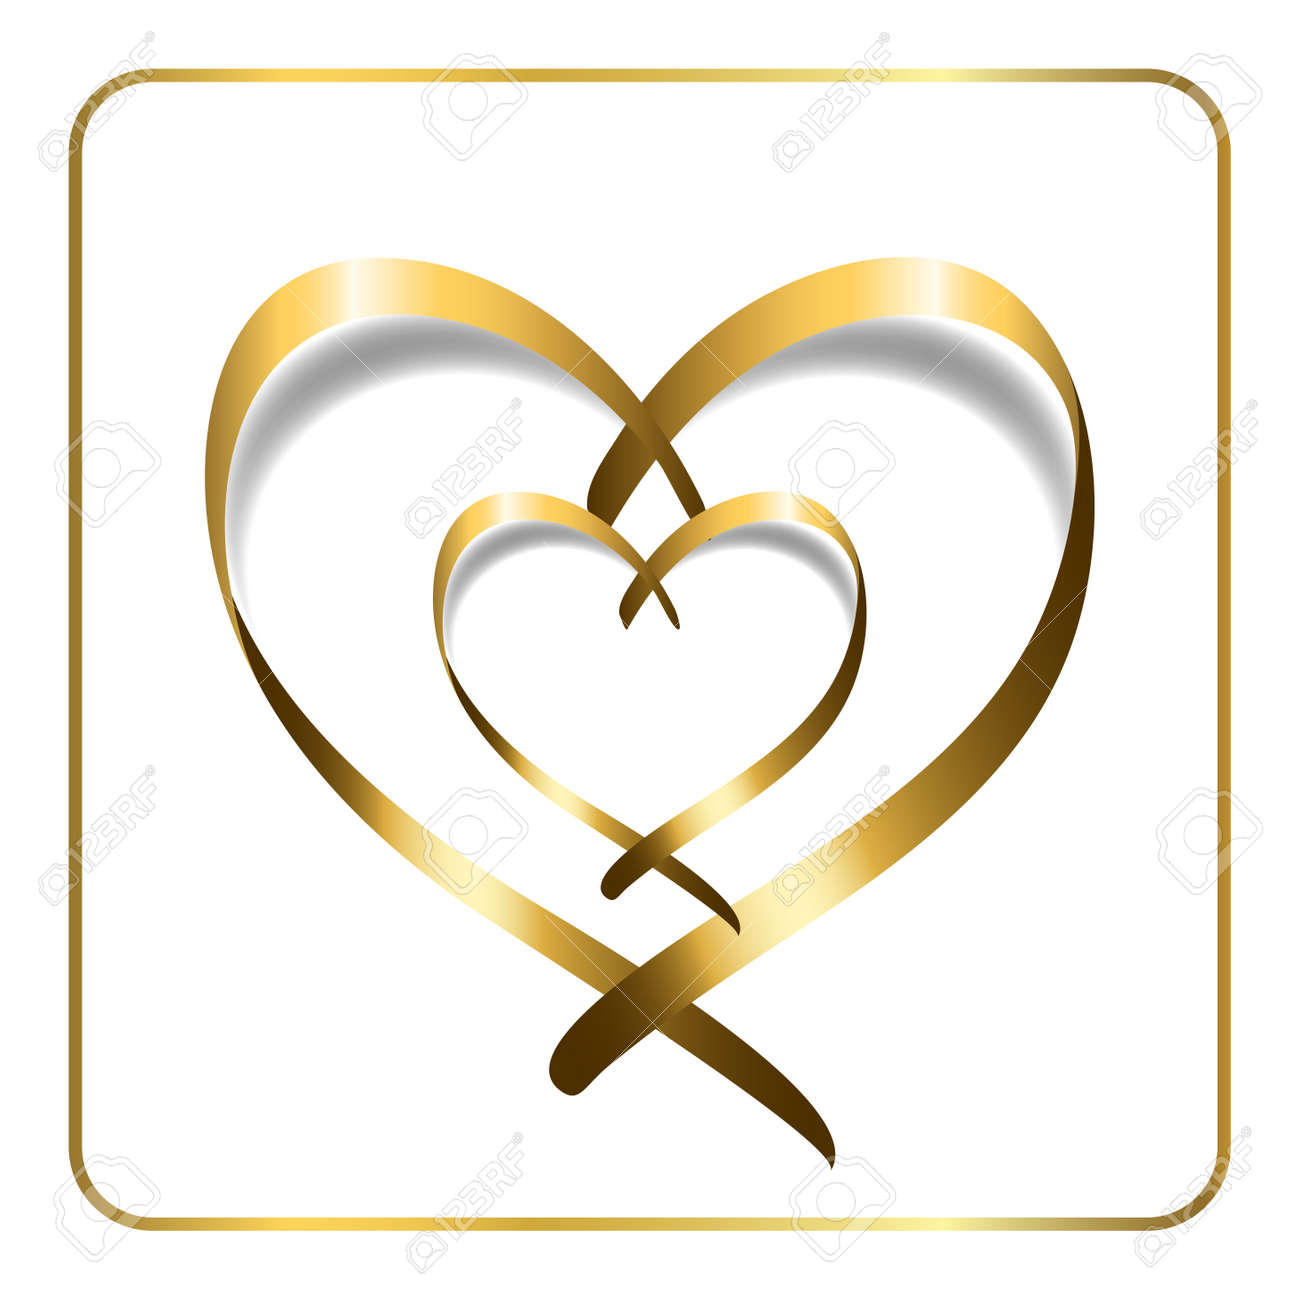 Gold Ribbon Double Heart Golden Silhouette Isolated On White